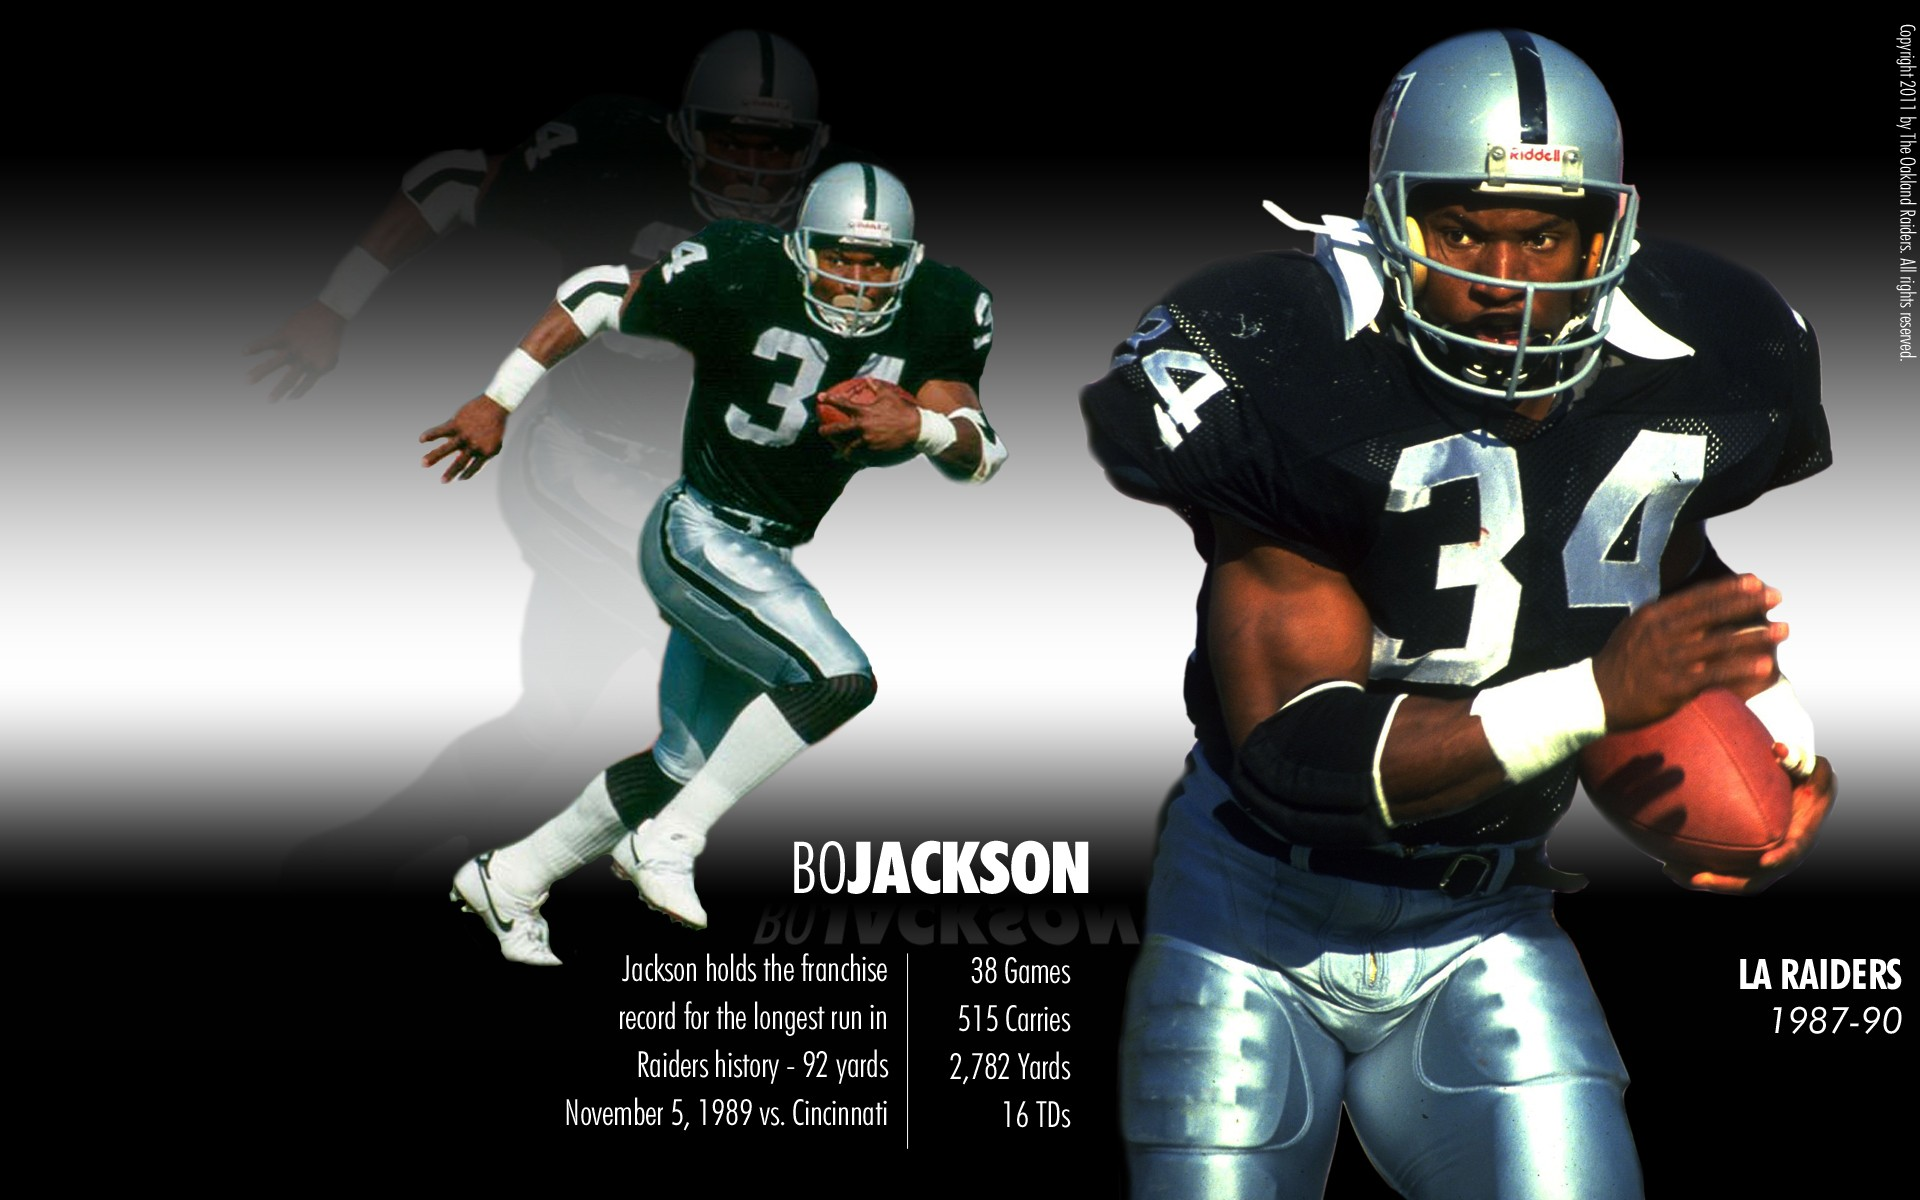 Oakland Raiders Wallpaper 183 ① Download Free Awesome Full Hd